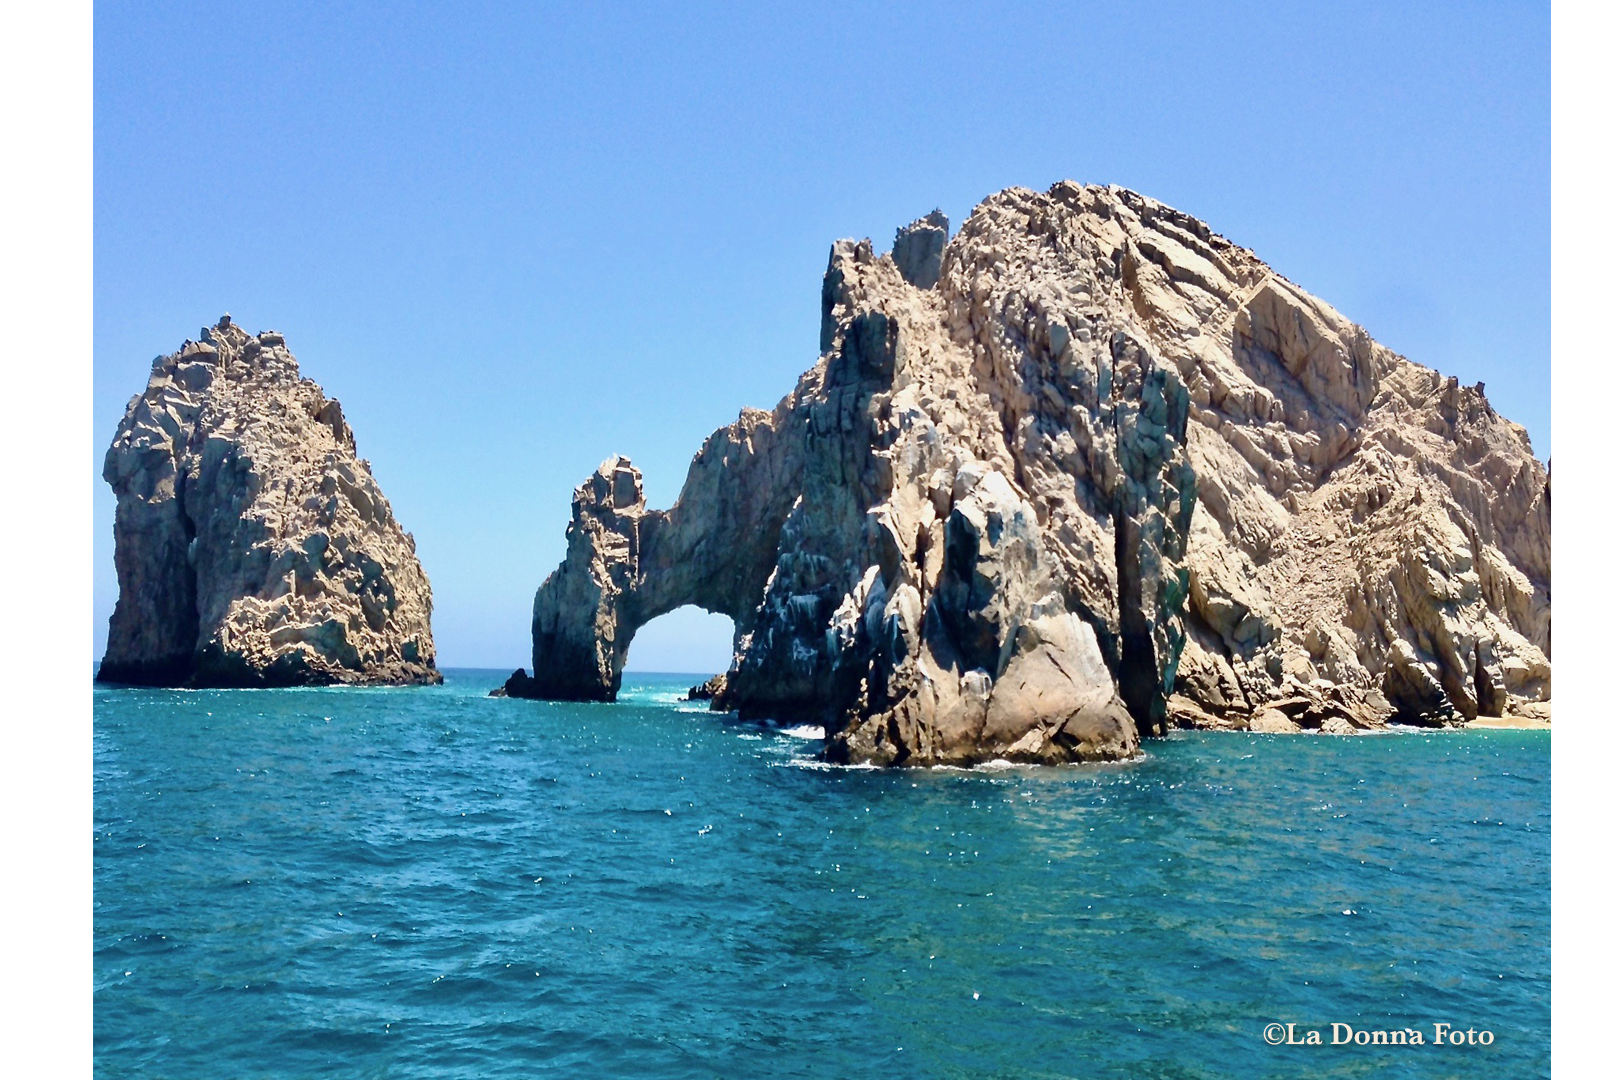 Arch of Love-Cabo San Lucas - Italian Landscape Photography - La Donna Foto Houston, TX 77007